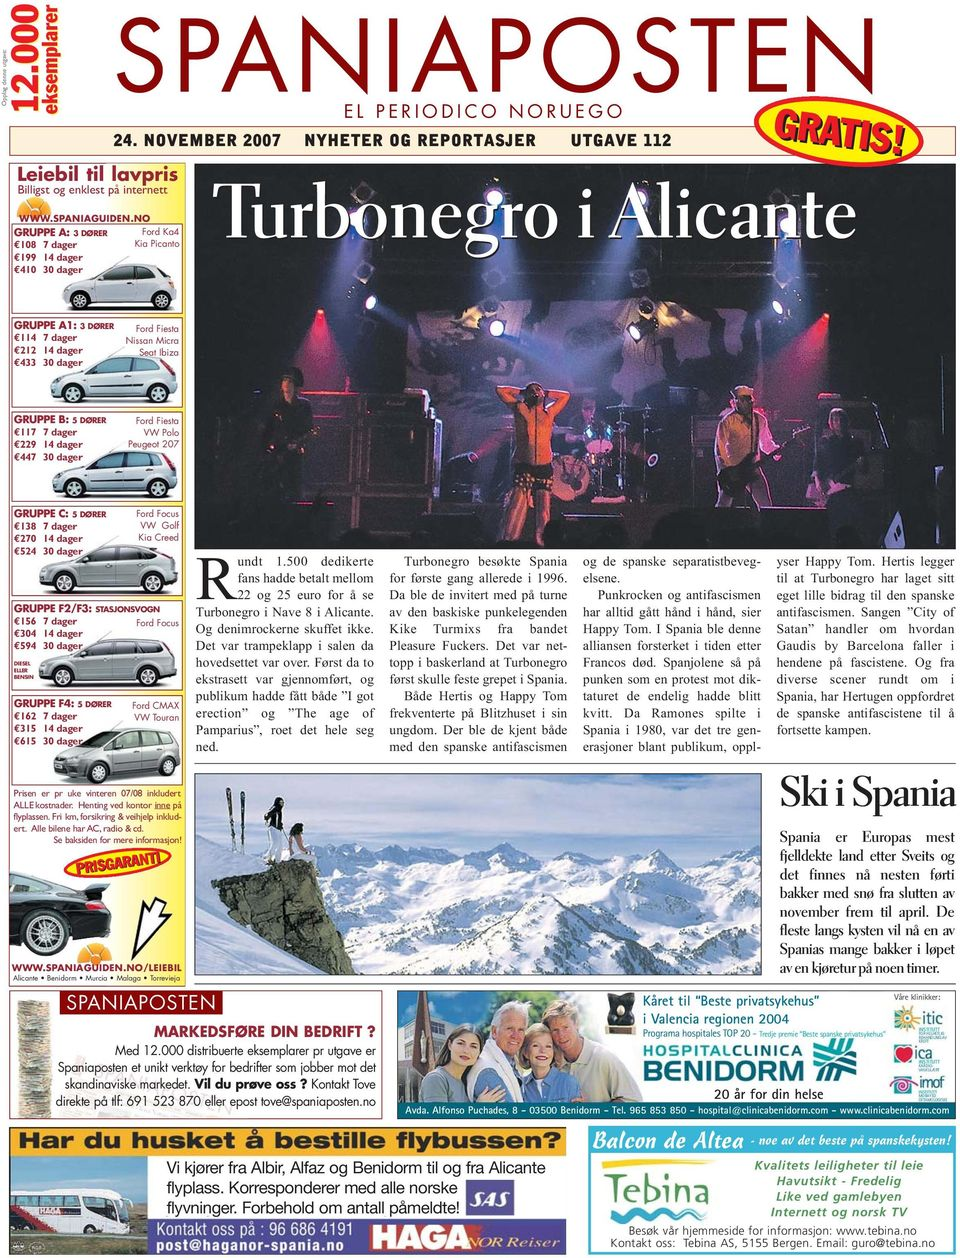 Turbonegro i Alicante GRUPPE A1: 3 DØRER 114 7 dager 212 14 dager 433 30 dager Ford Fiesta Nissan Micra Seat Ibiza GRUPPE B: 5 DØRER 117 7 dager 229 14 dager 447 30 dager Ford Fiesta VW Polo Peugeot